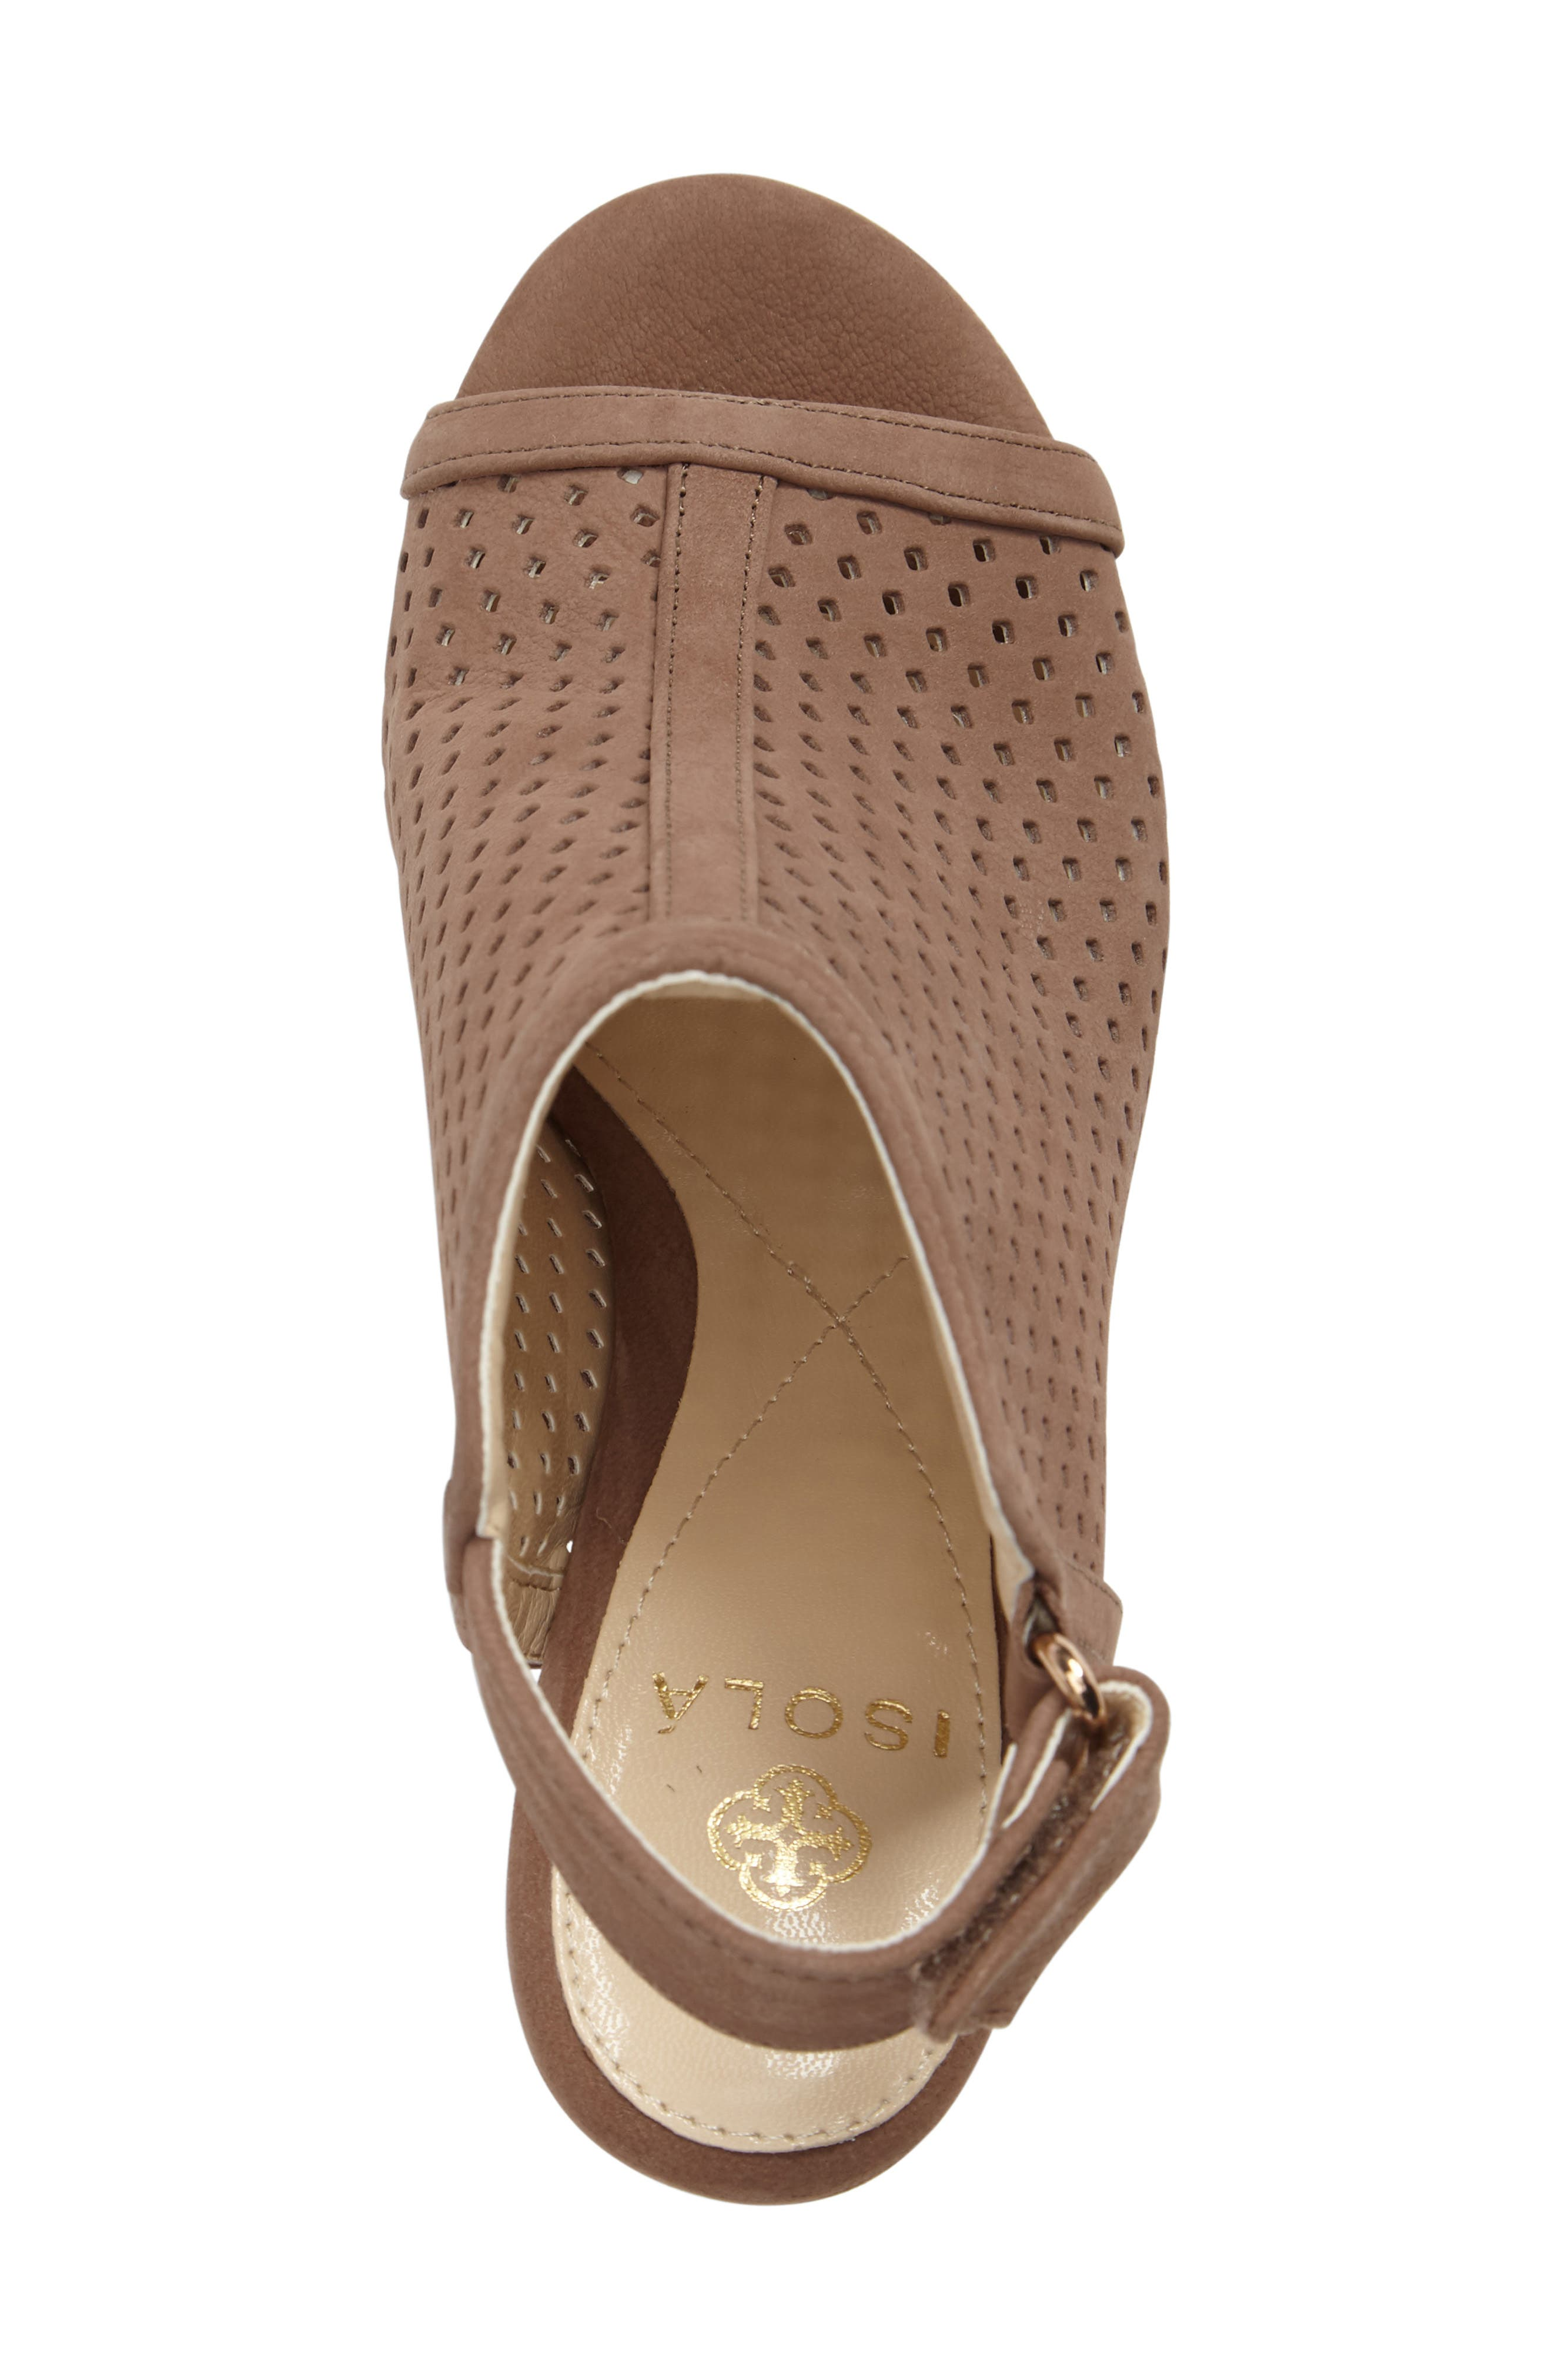 'Lora' Perforated Open-Toe Bootie Sandal,                             Alternate thumbnail 5, color,                             BARLEY LEATHER